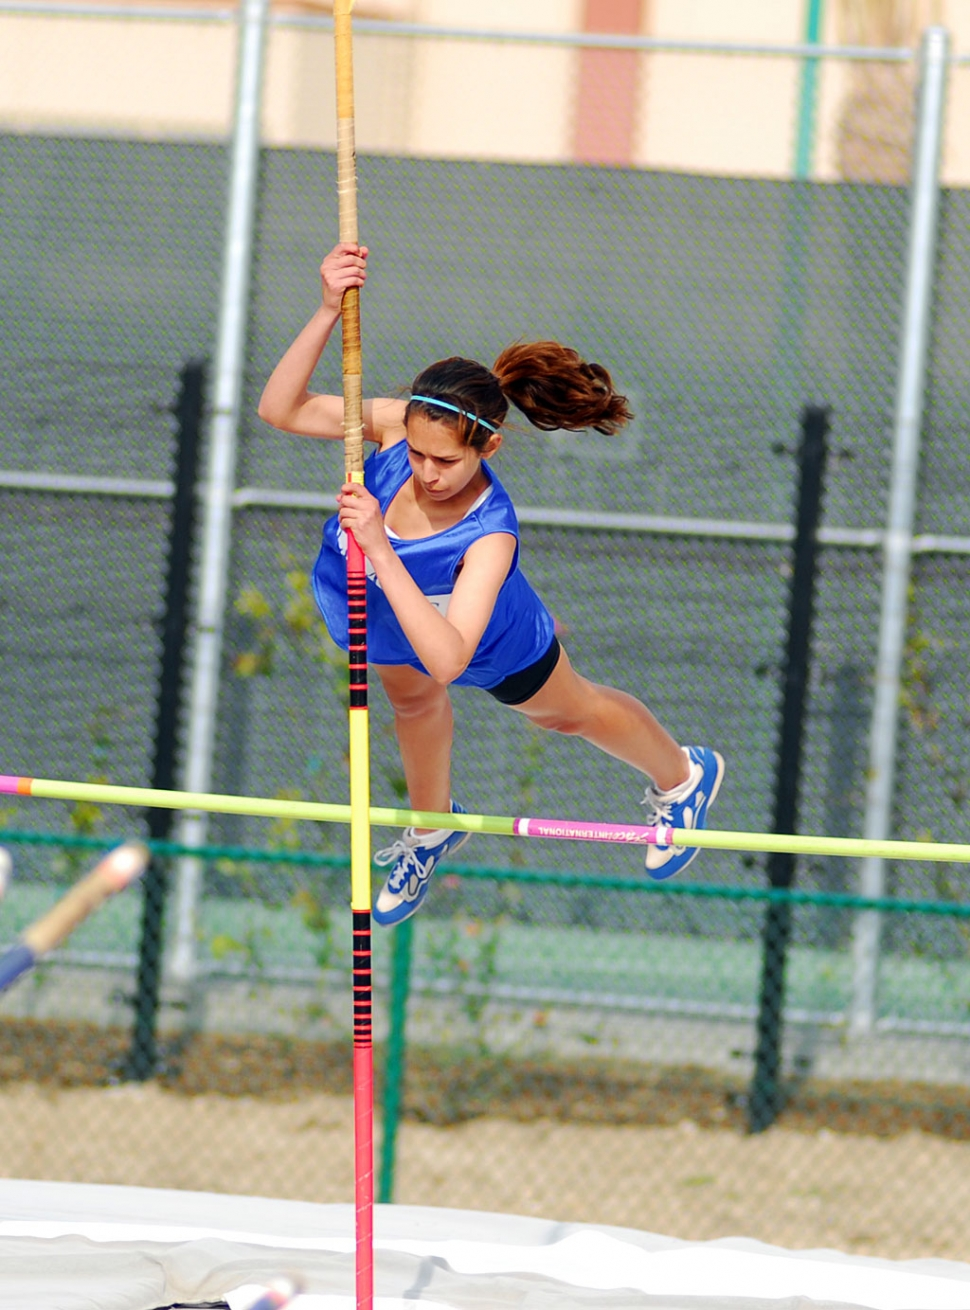 Kayla Brunett does a fantastic job on the Pole Vault.